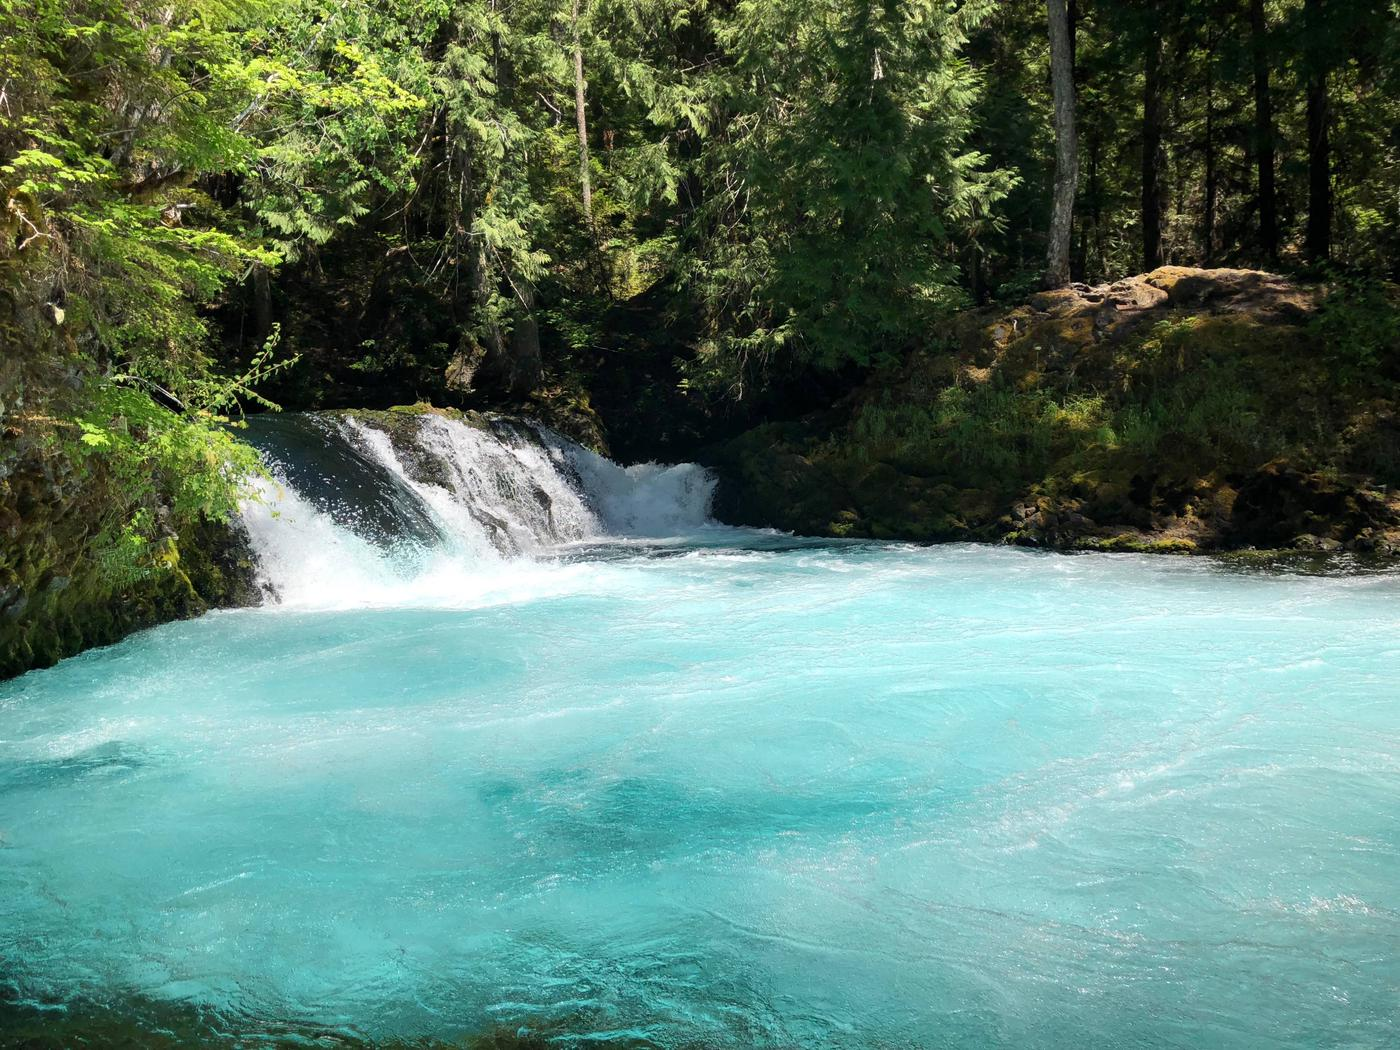 The McKenzie River, Willamette National Forest